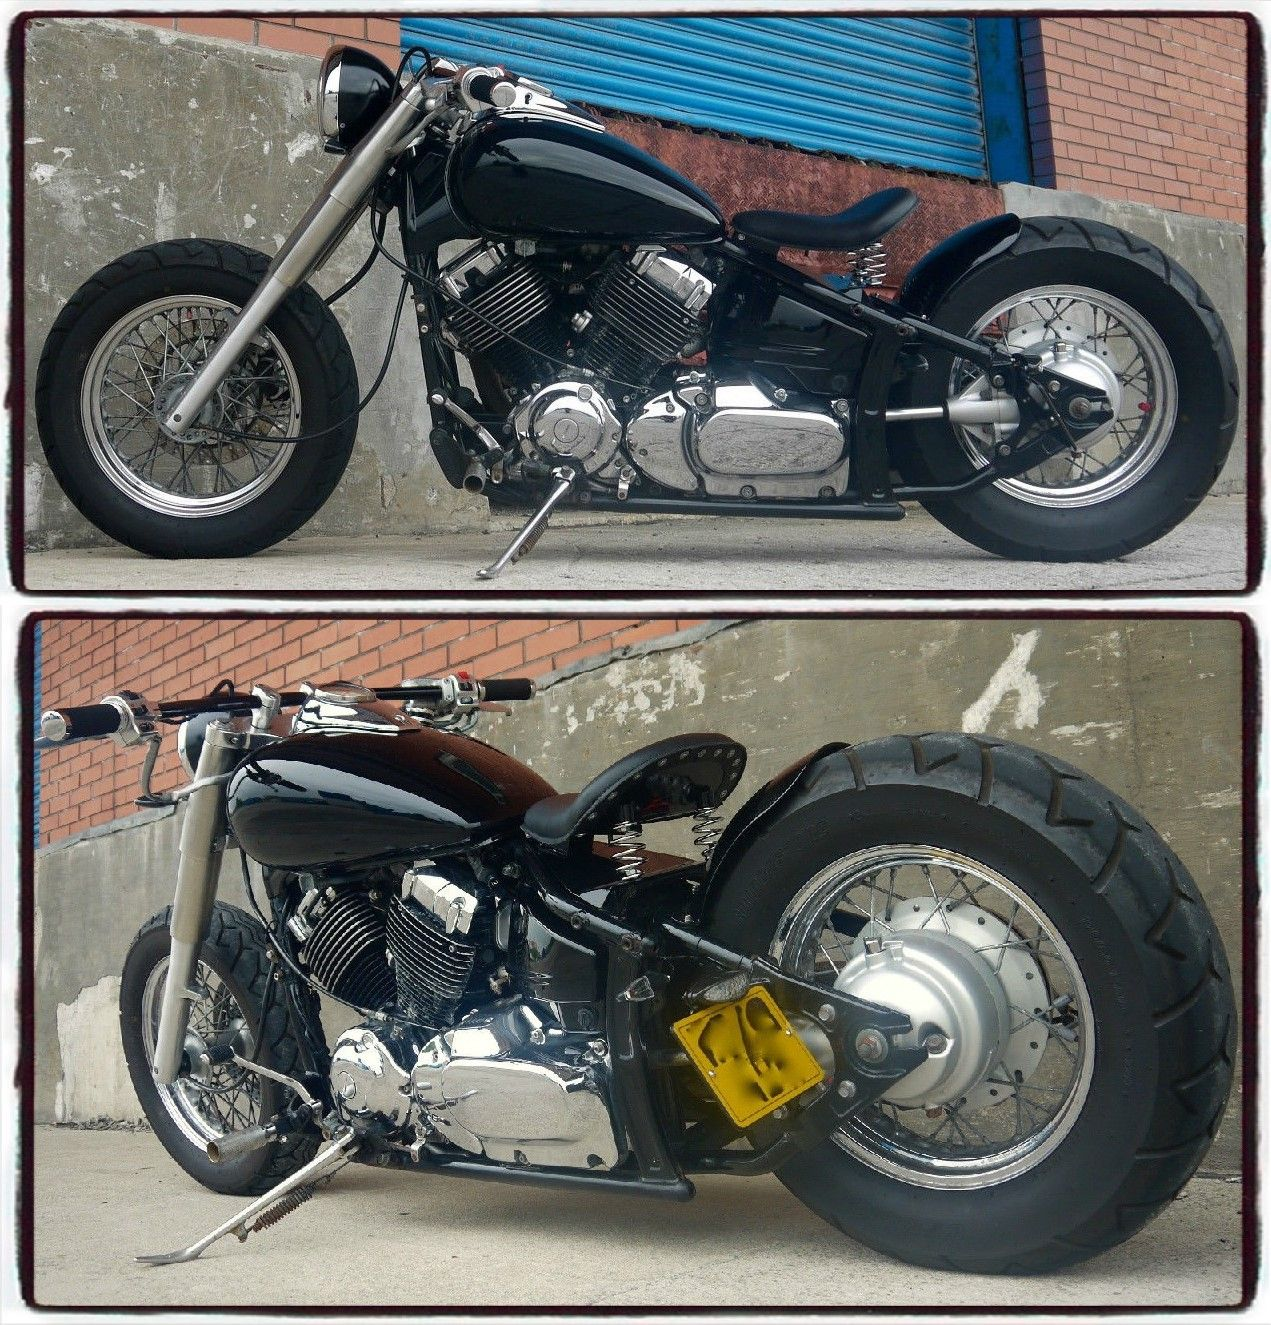 2000 Yamaha XVS650A Black Bobber Dragstar V-Star, currently being auctioned on eBay with a Classified Ad Price of £3,850 (or Best Offer). http://ebay.co.uk/itm/252133958324?clk_rvr_id=916281357301&rmvSB=true